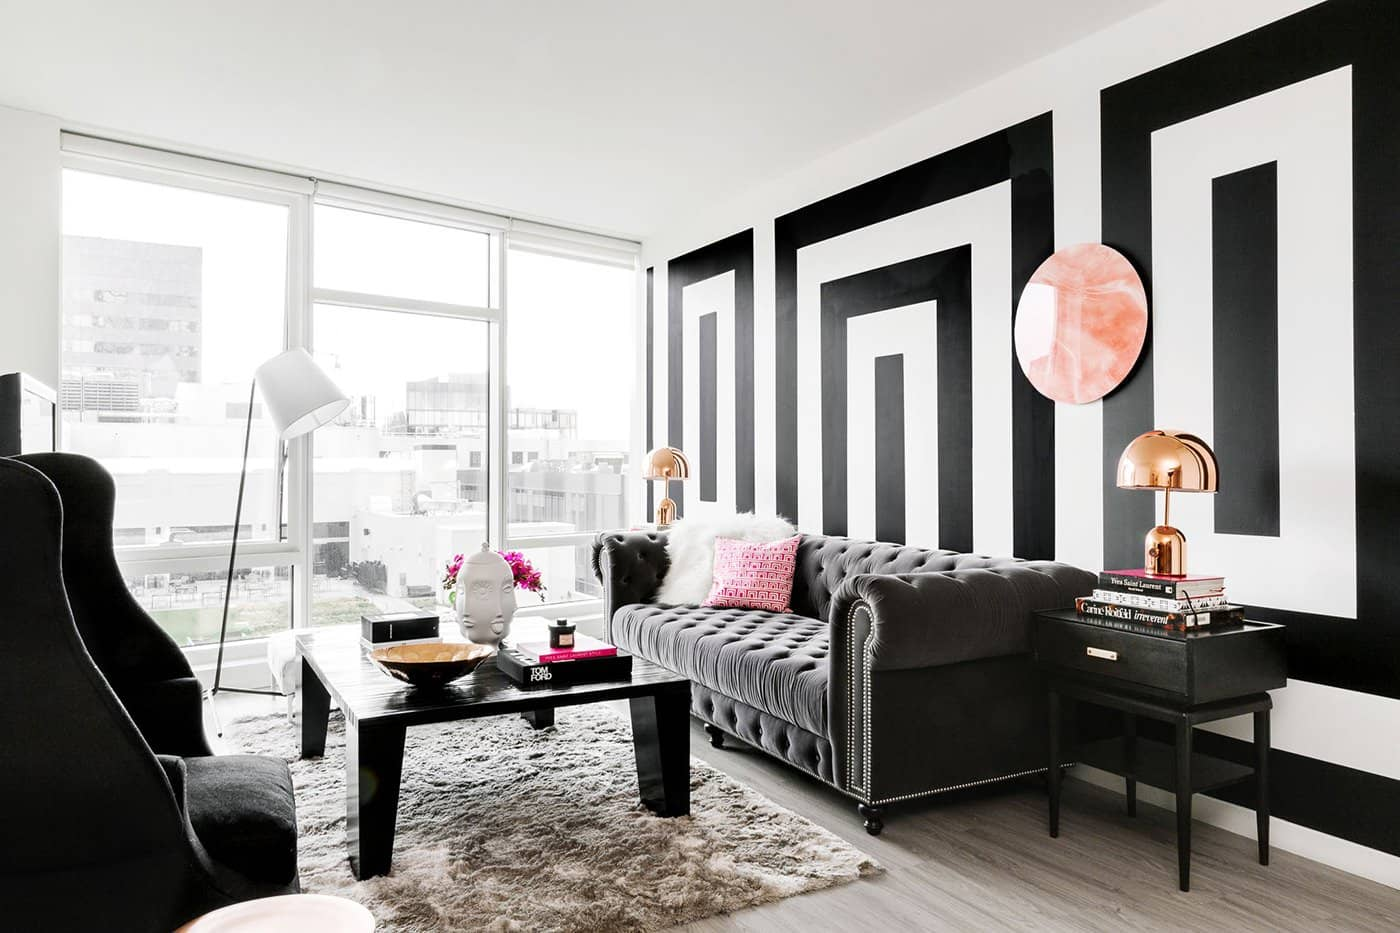 Vintage designed living room, panoramic window and black colored furniture